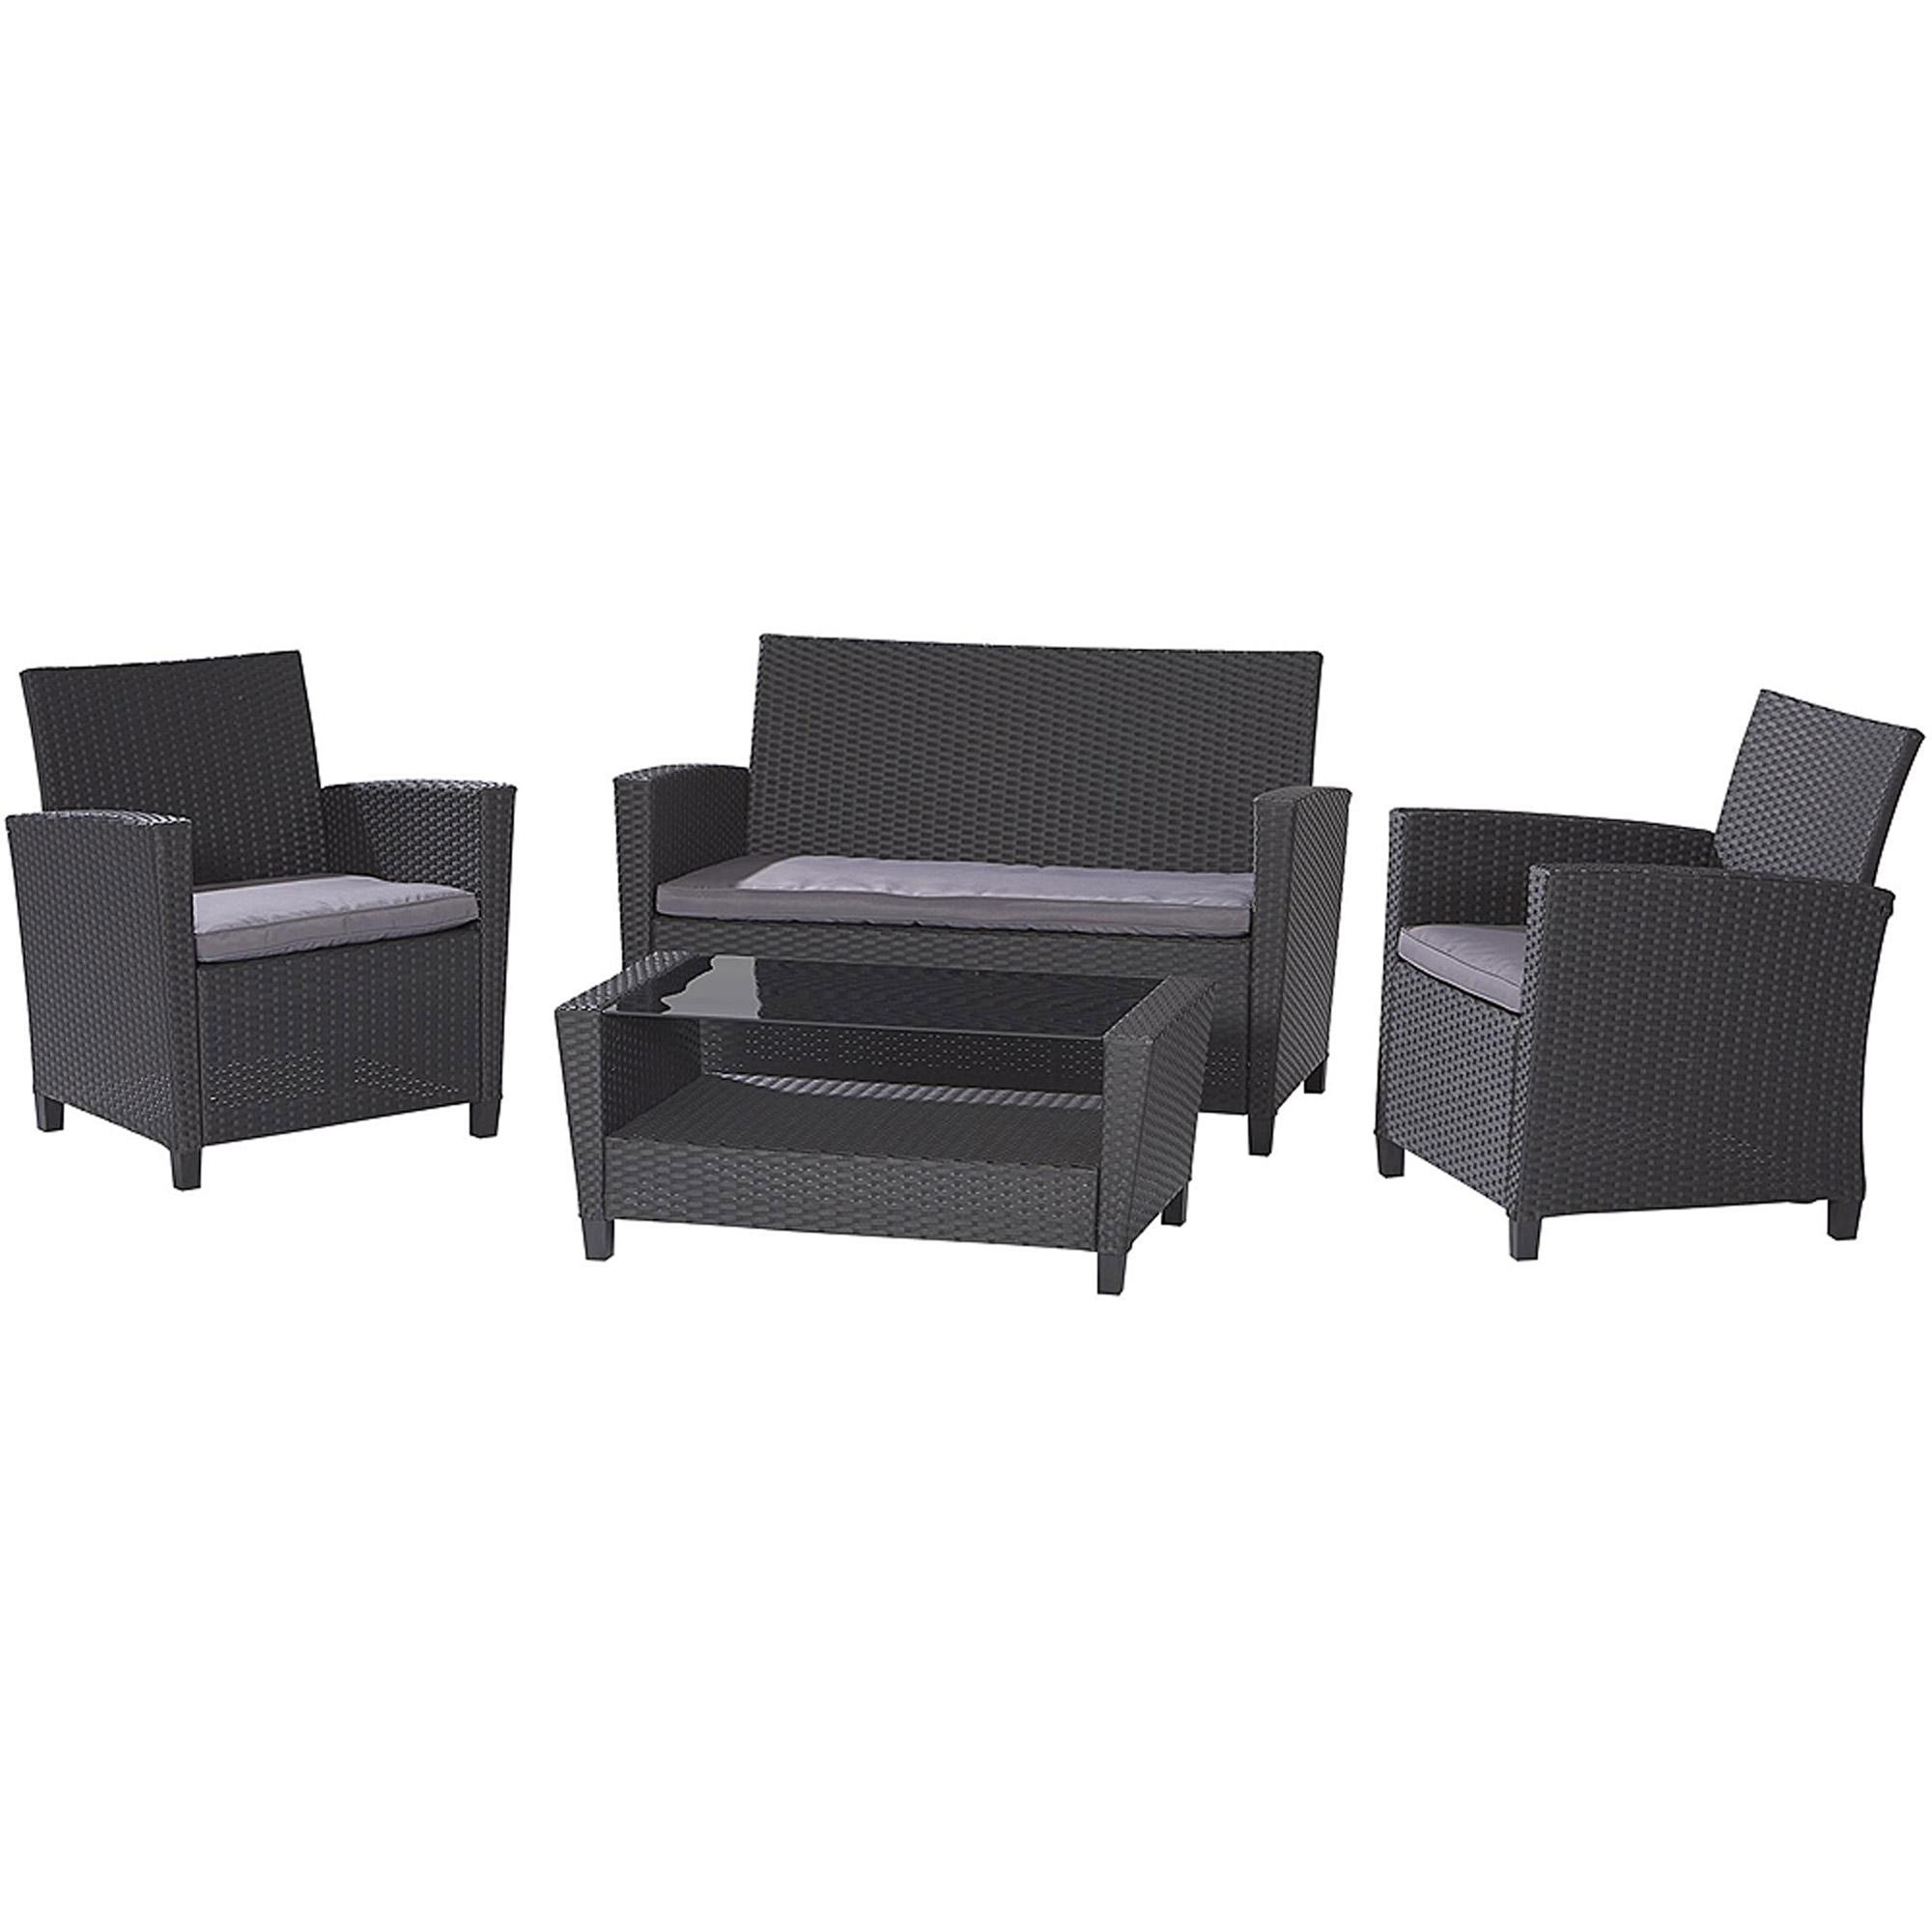 Cosco Outdoor Malmo 4 Piece Resin Wicker Patio Conversation Set Throughout Black Wicker Sofas (View 8 of 20)